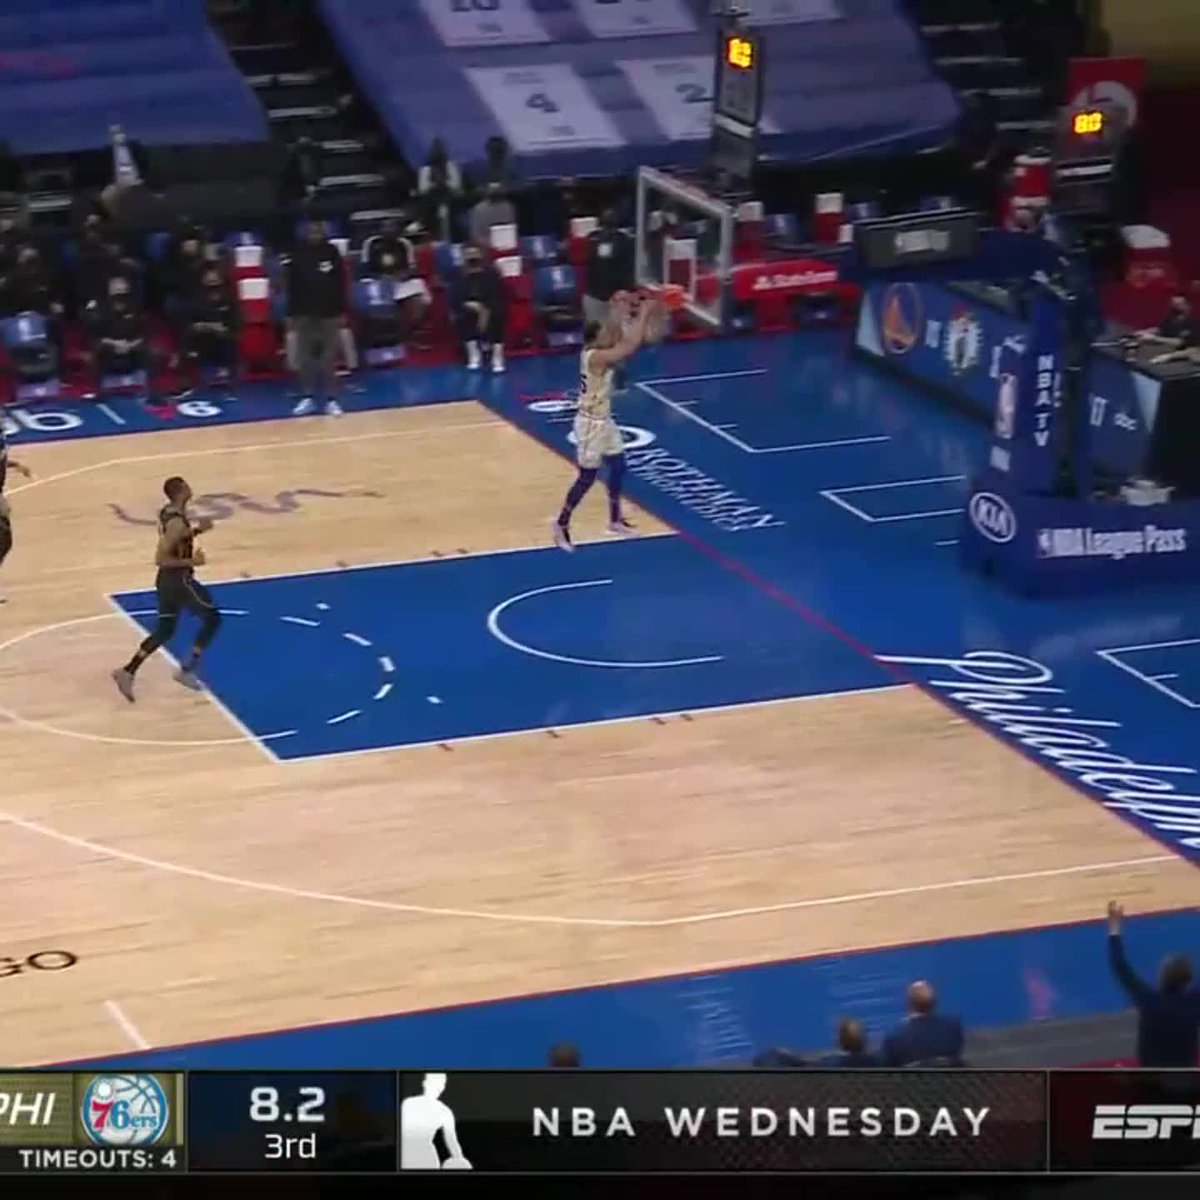 SIMMONS STEAL AND SLAM 💪 https://t.co/h9cE90qWBp